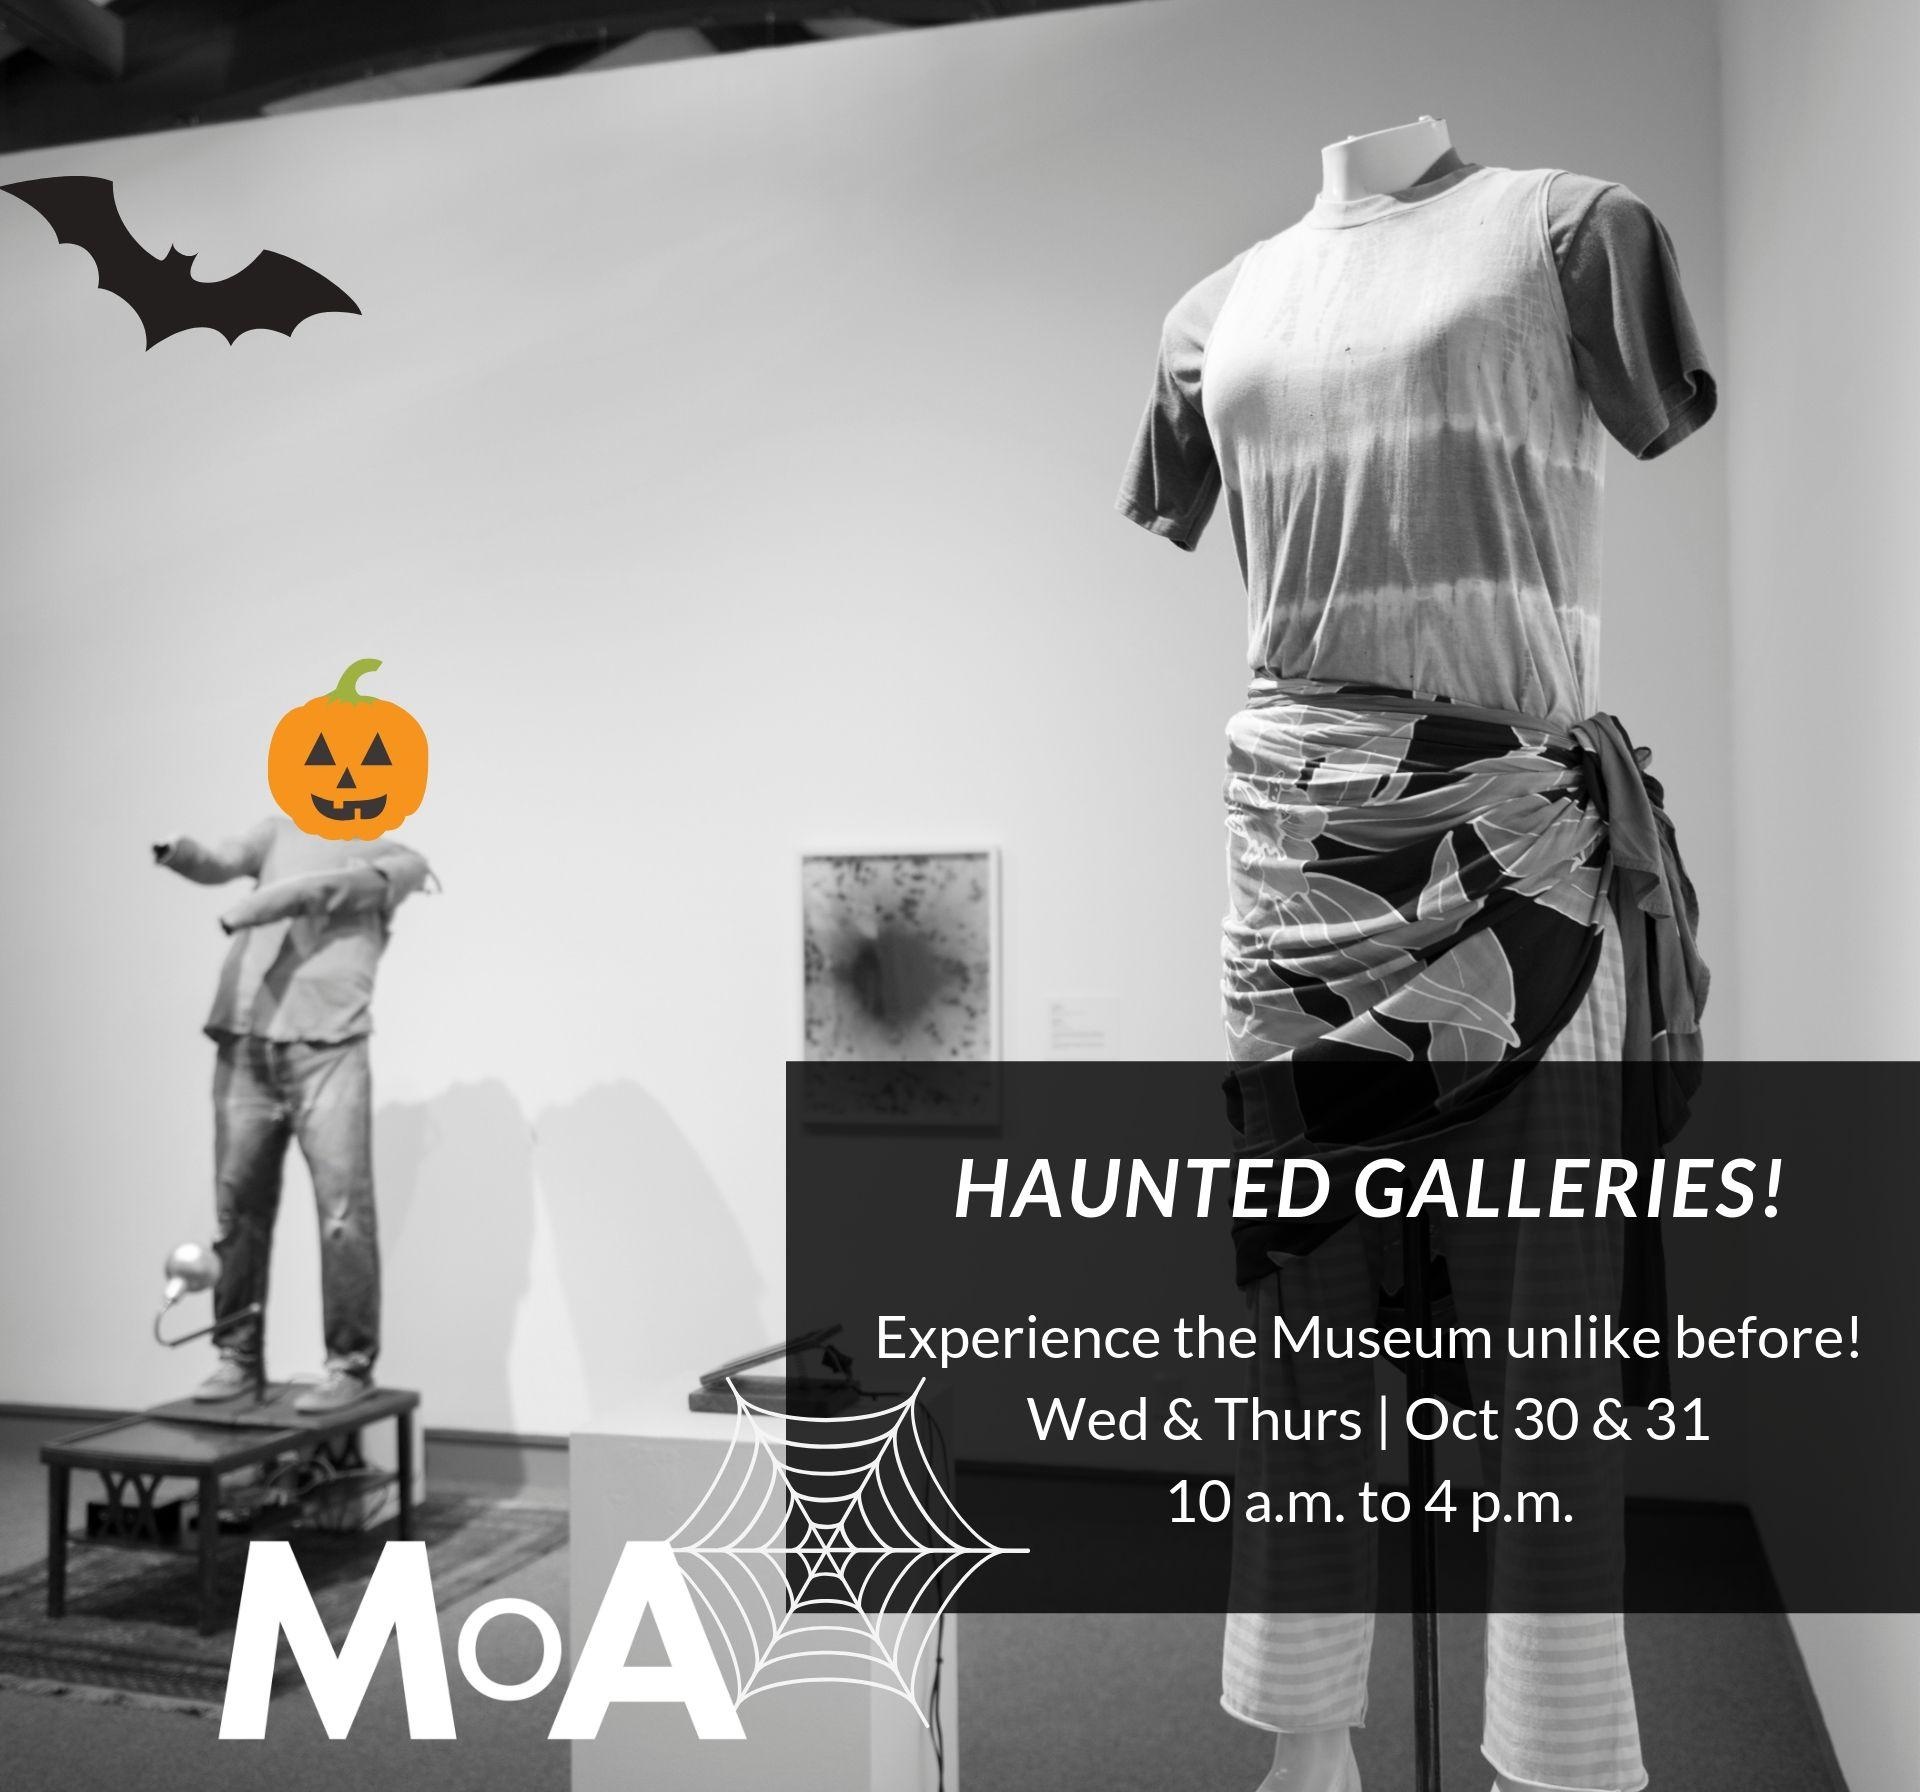 MoA Haunted Galleries